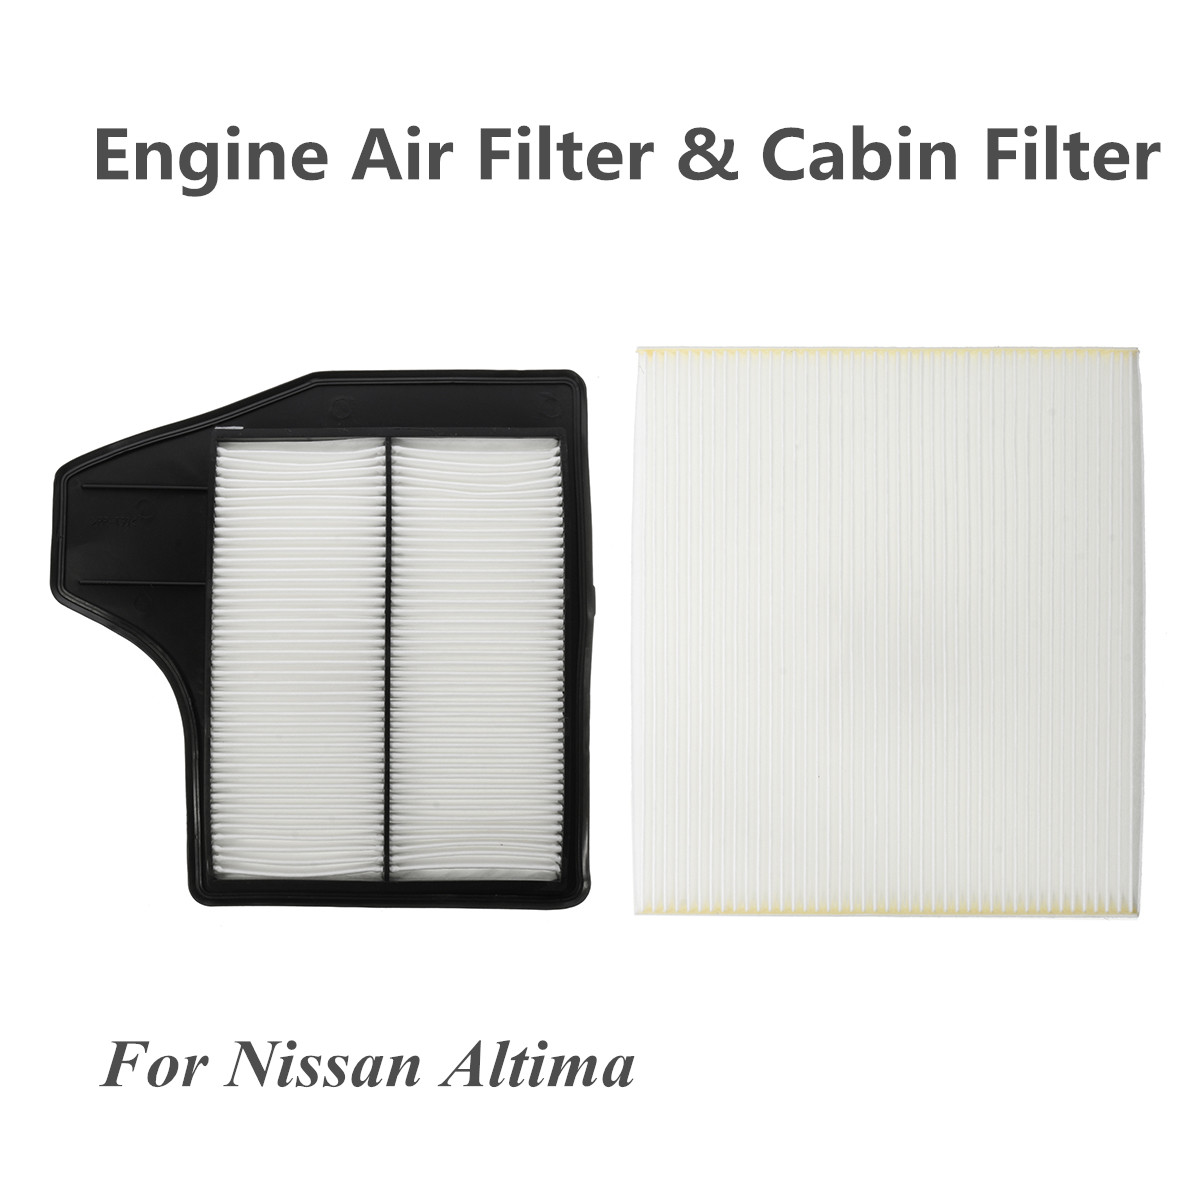 Car Engine Air Filter Cabin Filters 16546-3TA0A For Nissan Altima 4Cyl 2.5L 2013 2014 2015 2016Car Engine Air Filter Cabin Filters 16546-3TA0A For Nissan Altima 4Cyl 2.5L 2013 2014 2015 2016